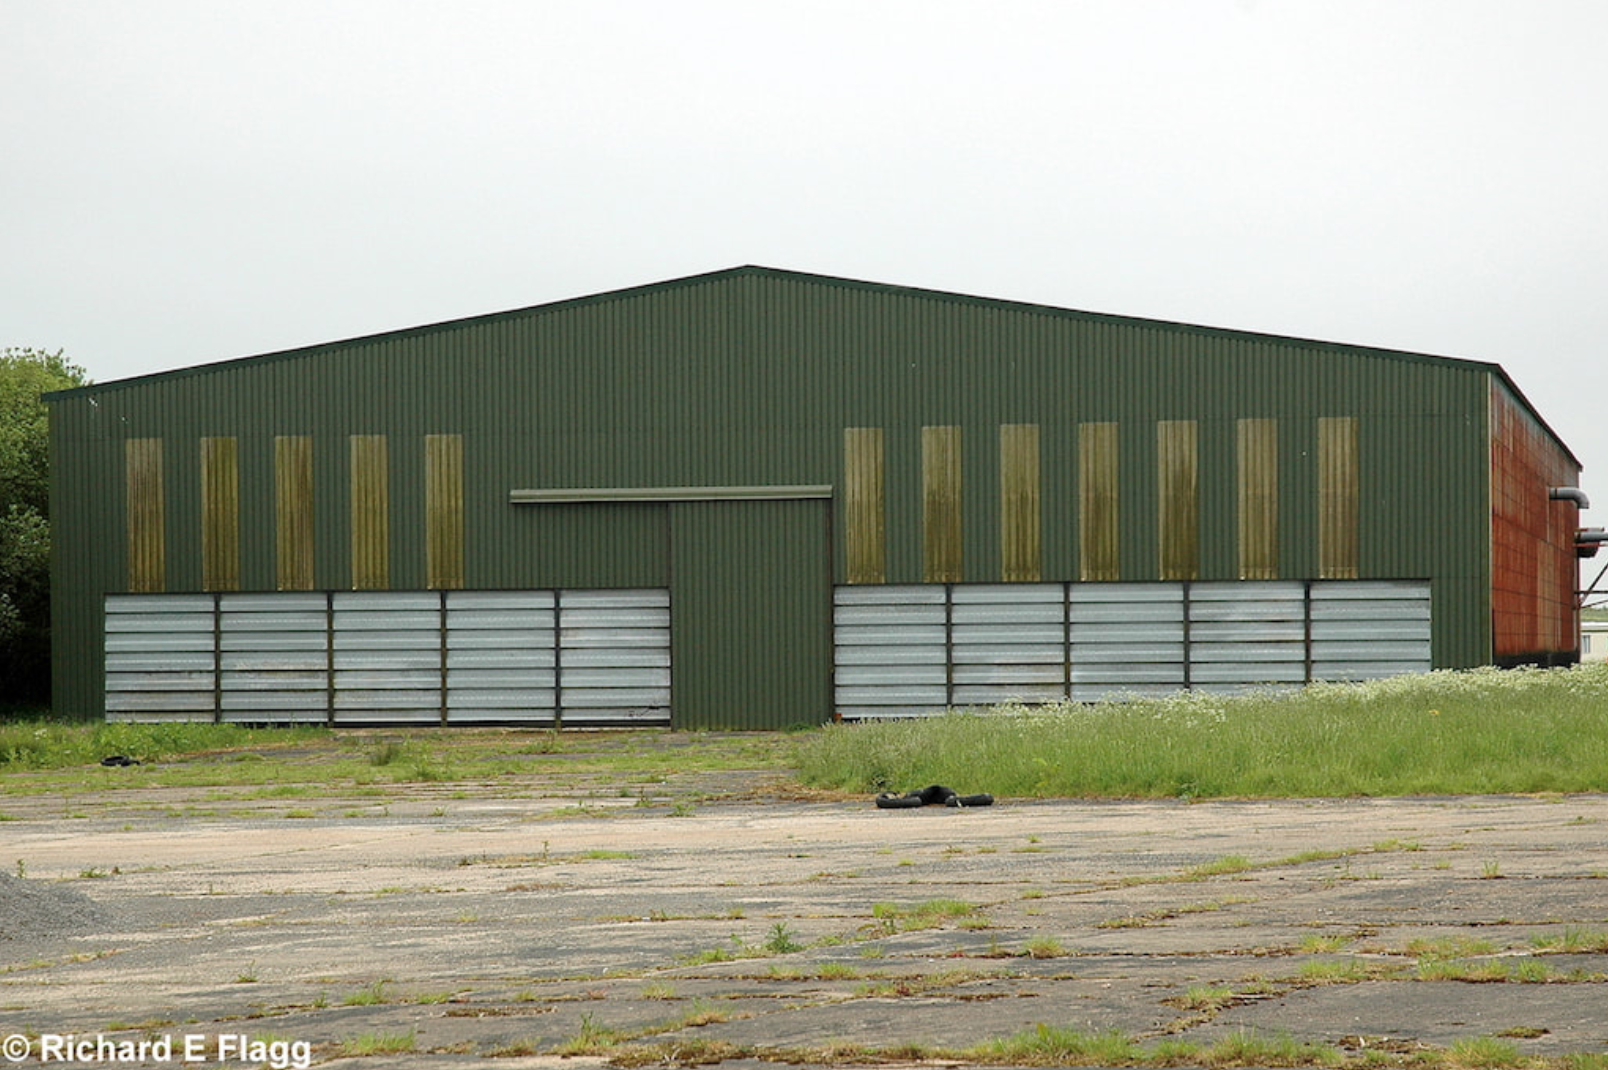 010T2 Type Aircraft Shed 4 - 25 May 2007.png